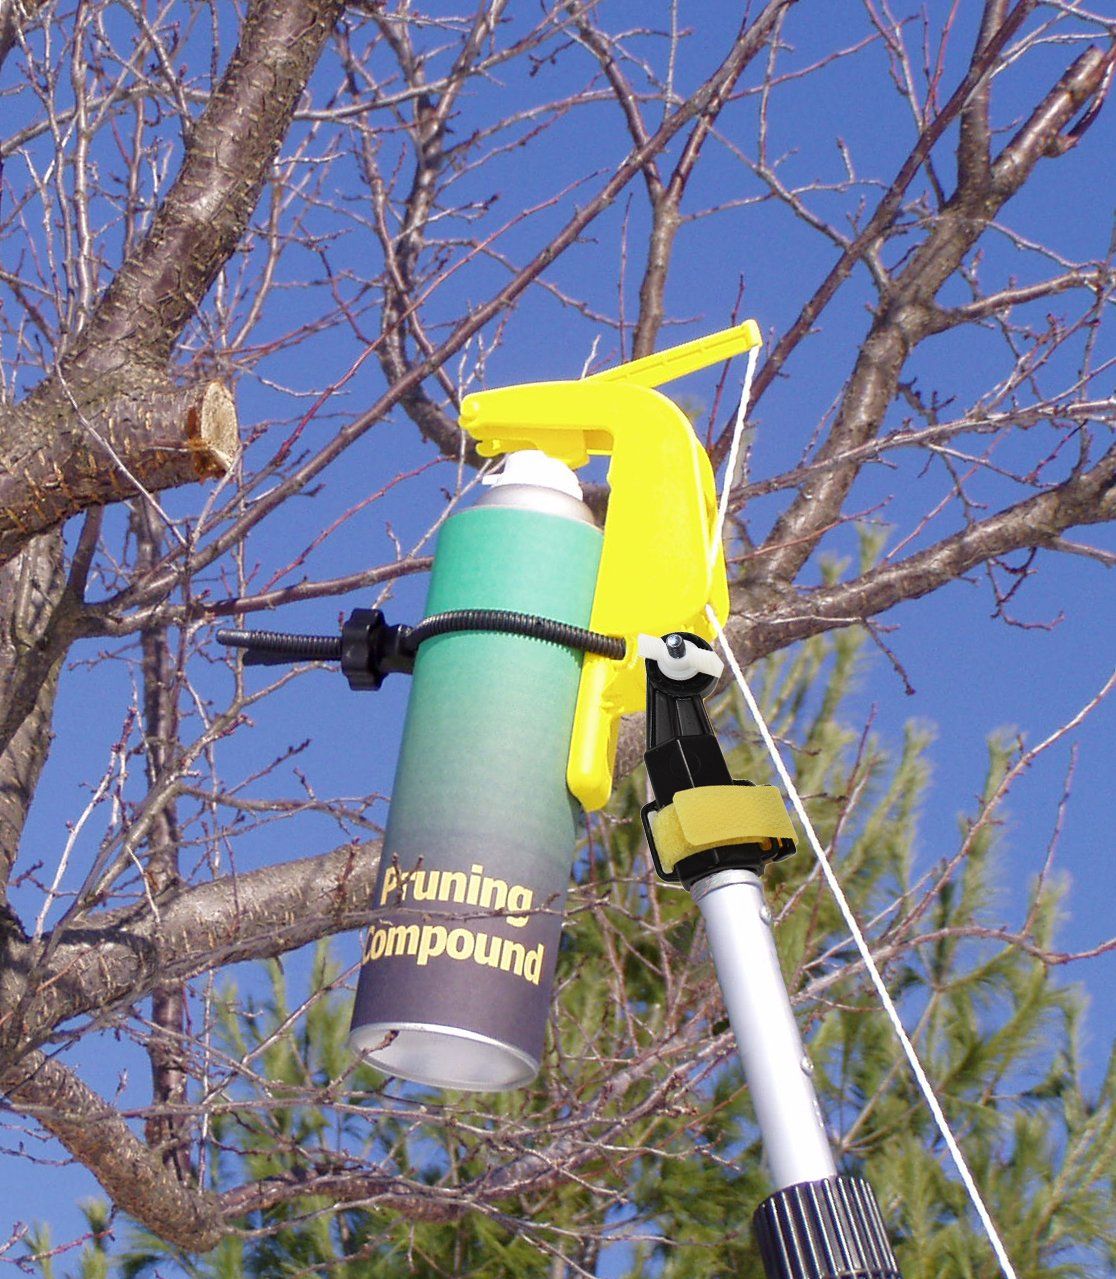 4Most Innovations GSP0205 Gotcha Sprayer Pro Aerosol Spray Can Extension Pole Adapter by 4most Innovations (Image #3)